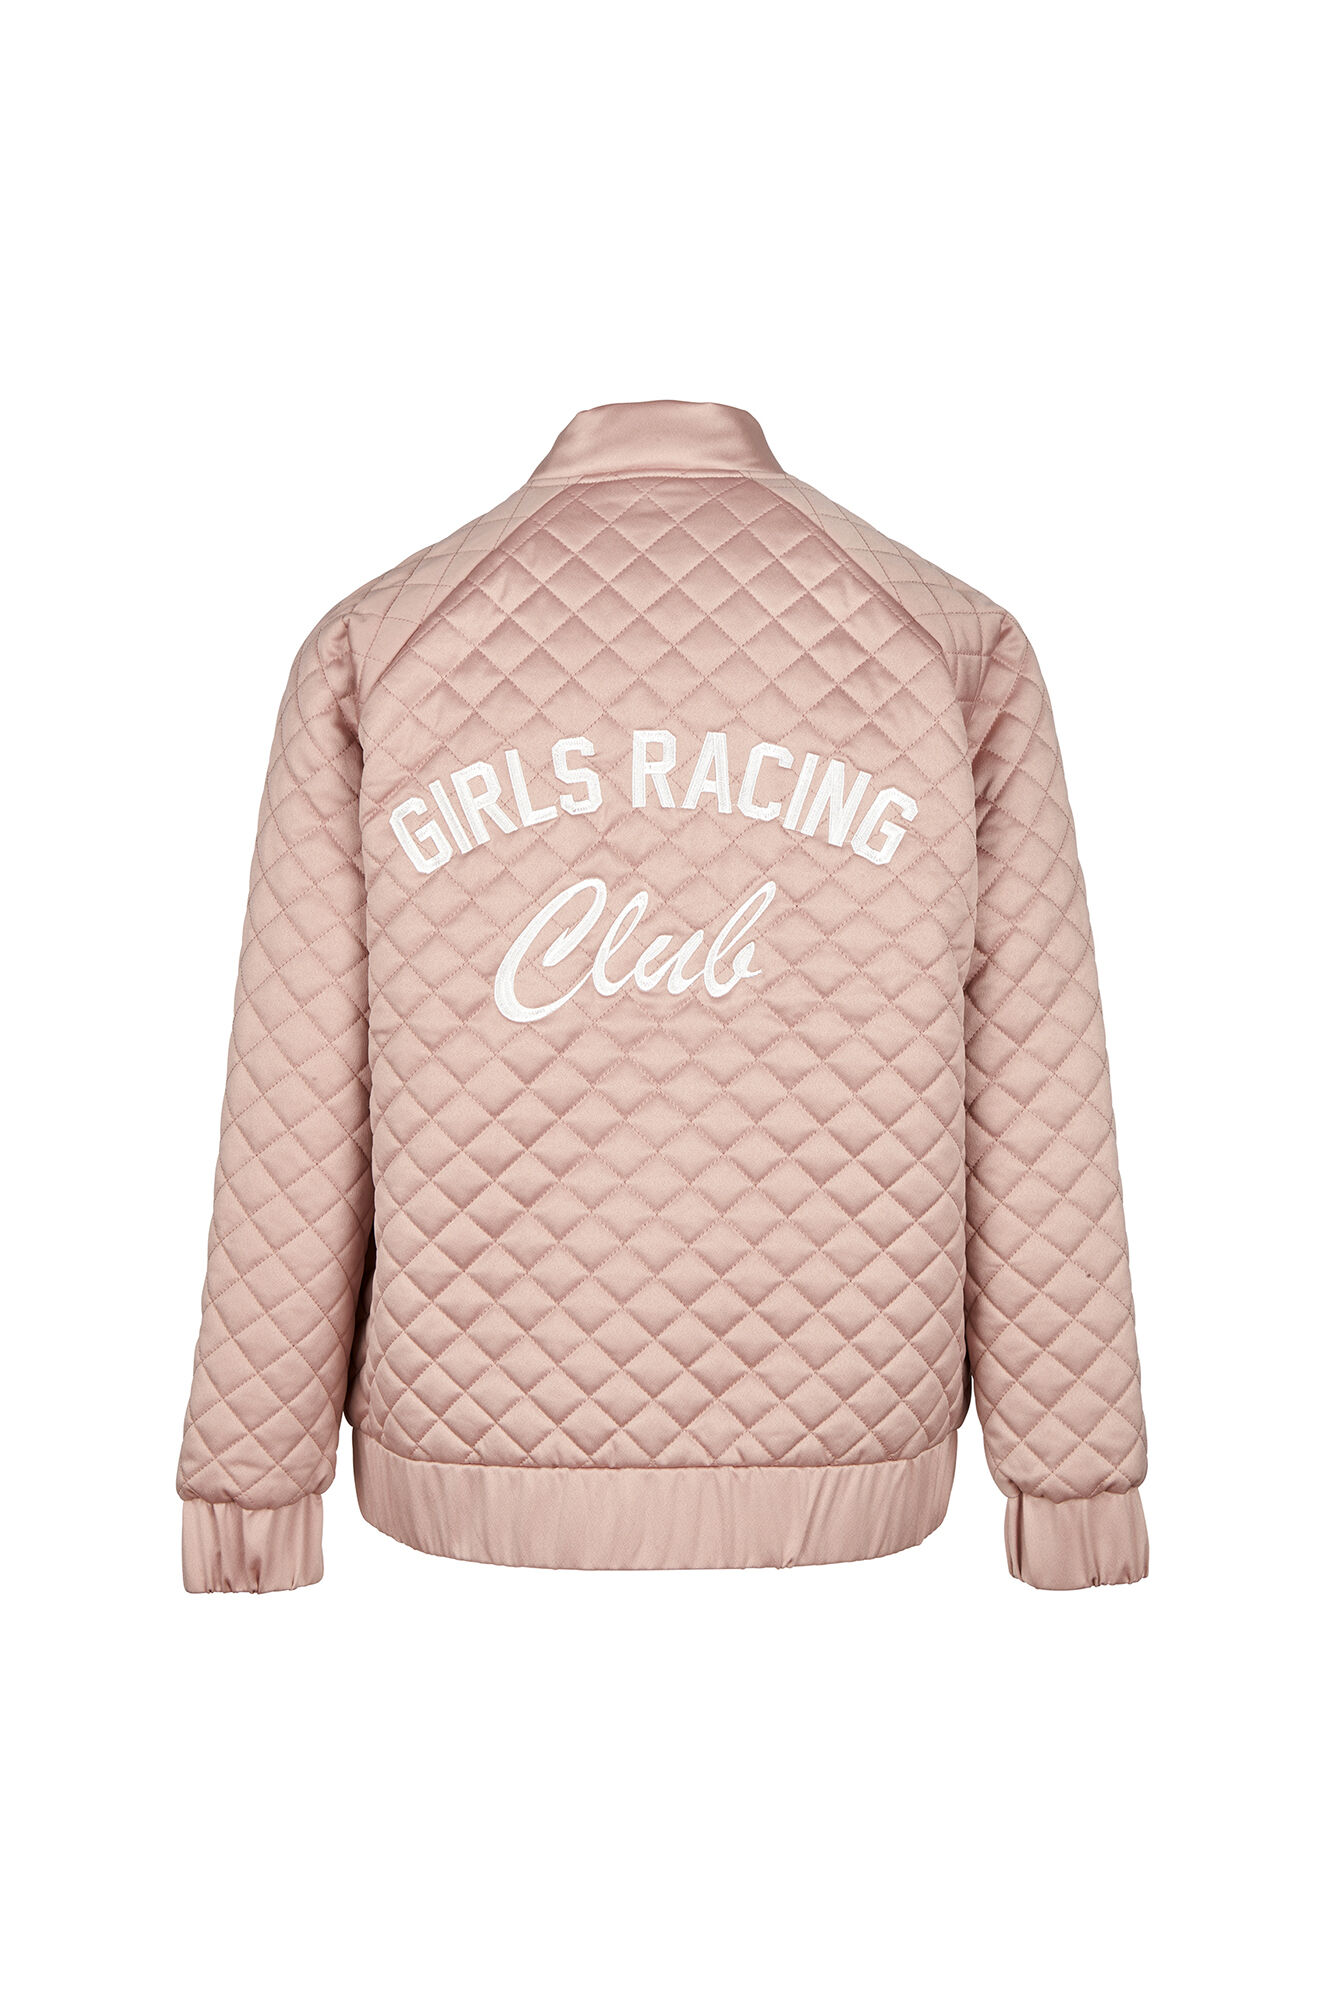 ROAD JACKET GIRLS 6426